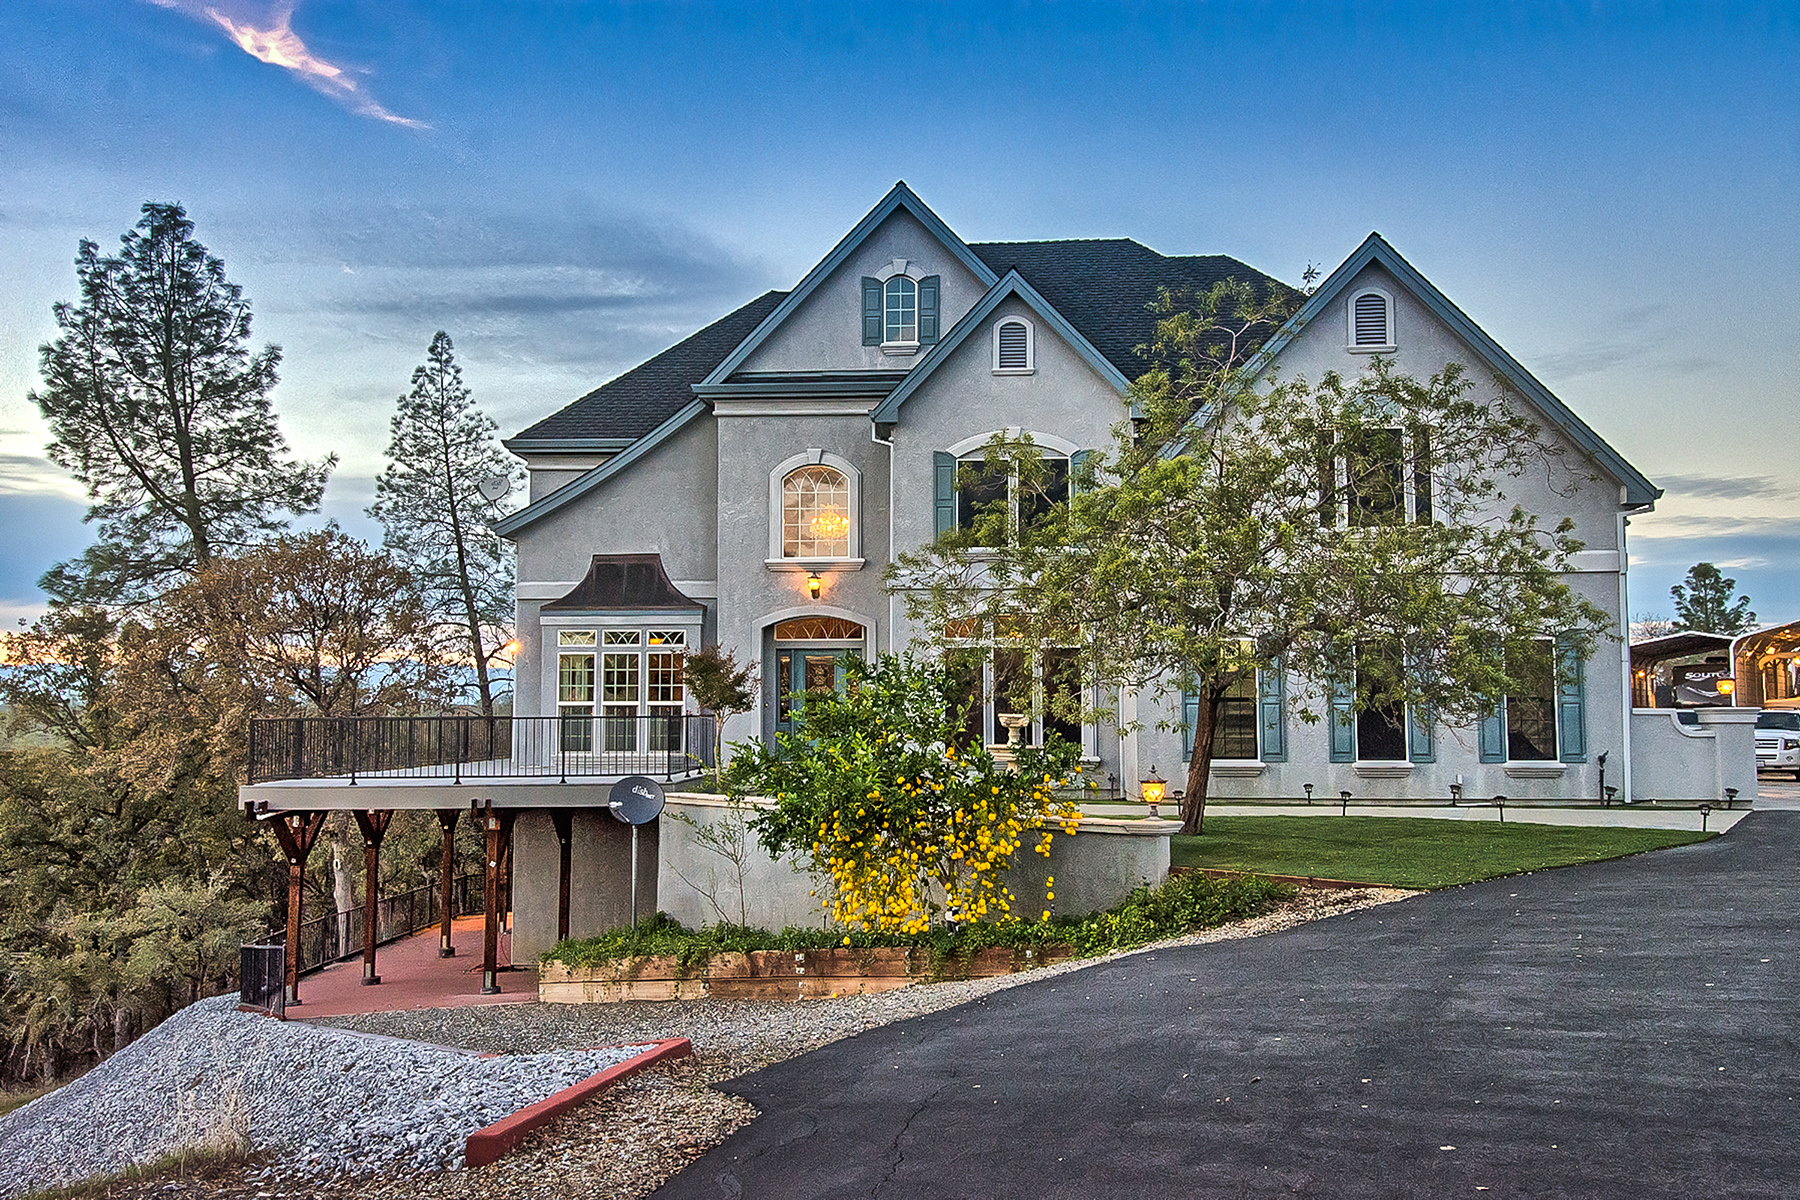 Single Family Home for Sale at Elegance and Inspiring Views in Quail Ridge Ranch 17465 Quail Ridge RD Cottonwood, California 96022 United States